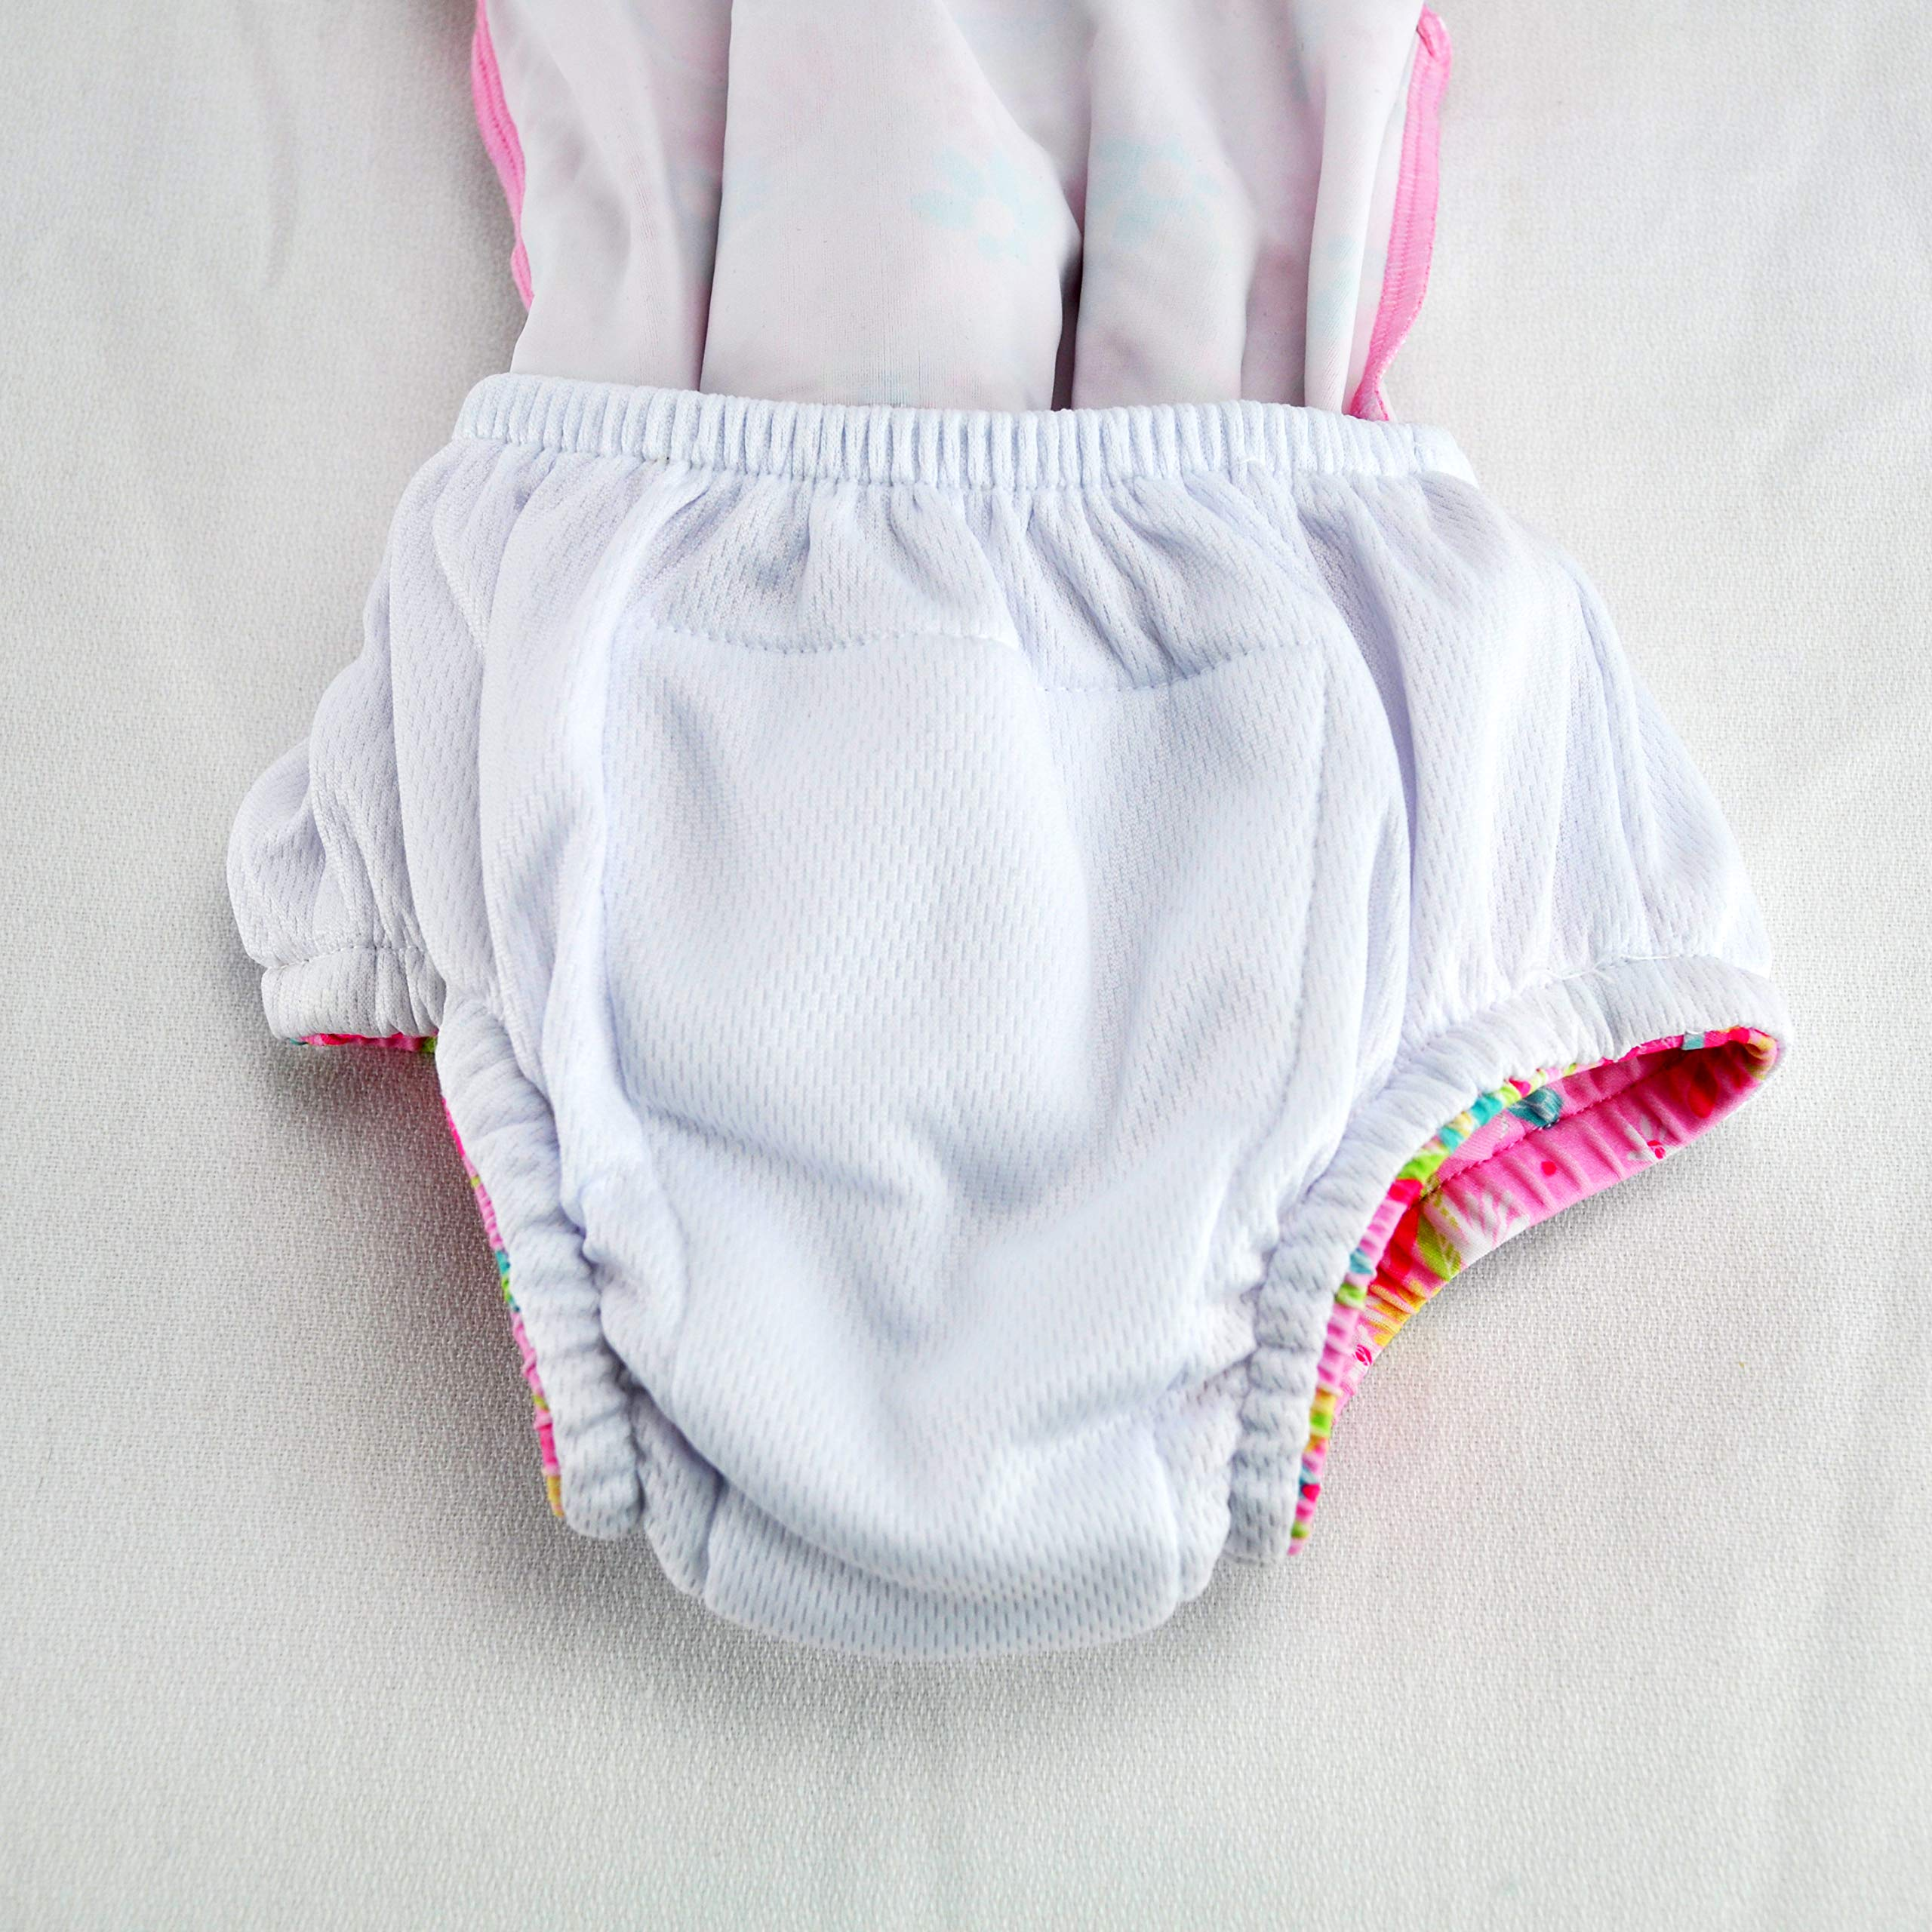 i play. Baby Girls 1pc Ruffle Swimsuit with Built-in Reusable Absorbent Swim Diaper, White Flower Patch, 6mo by i play. (Image #6)